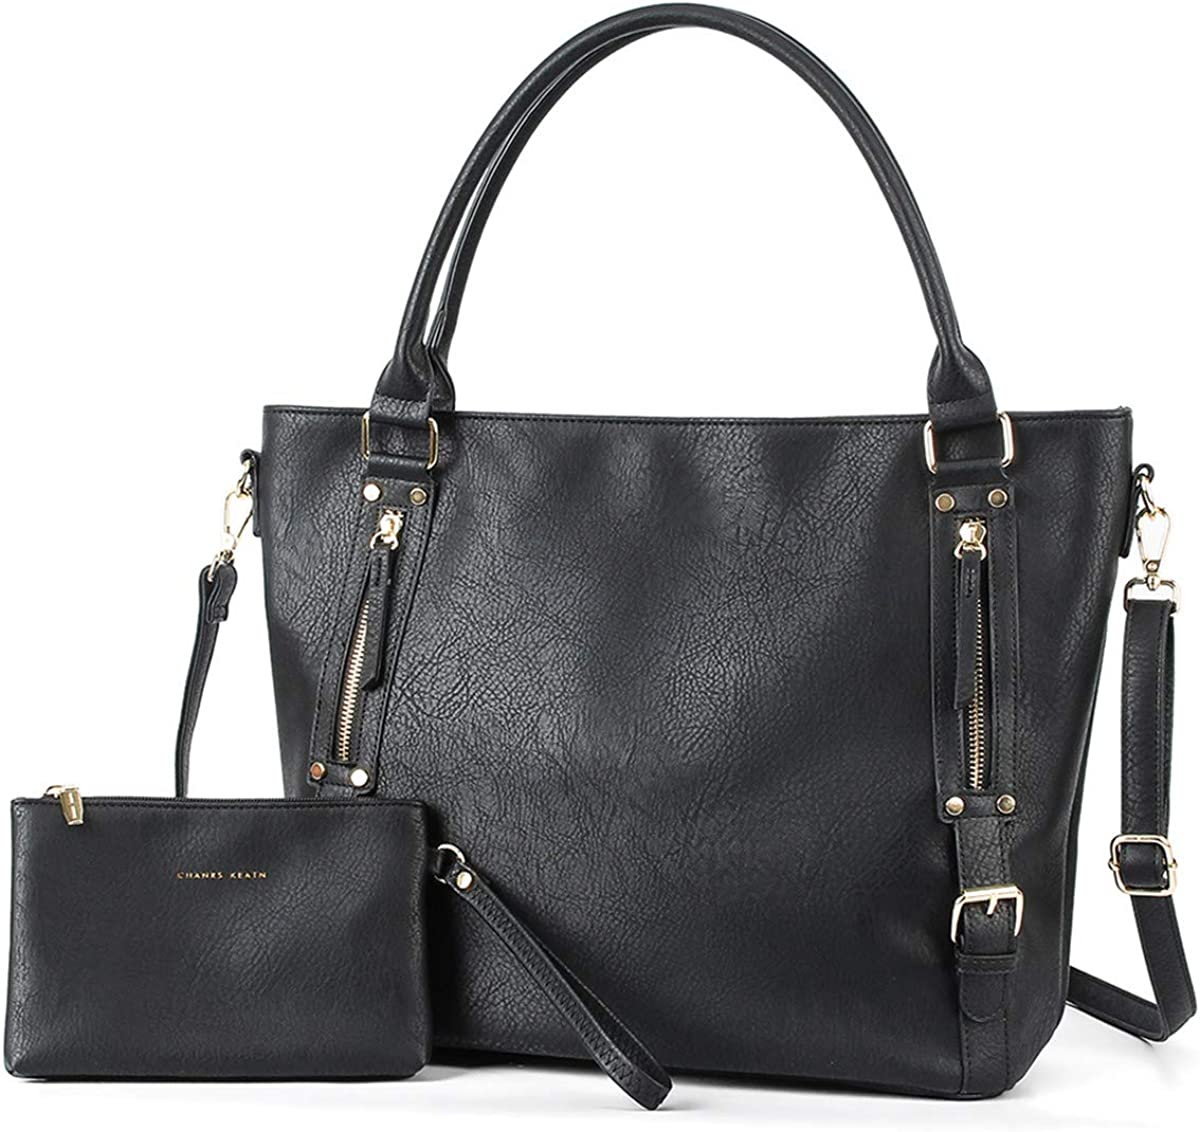 CHANRS KEATN Handbags for High material Women Leather Bag Shoulder Price reduction Ladies Tote